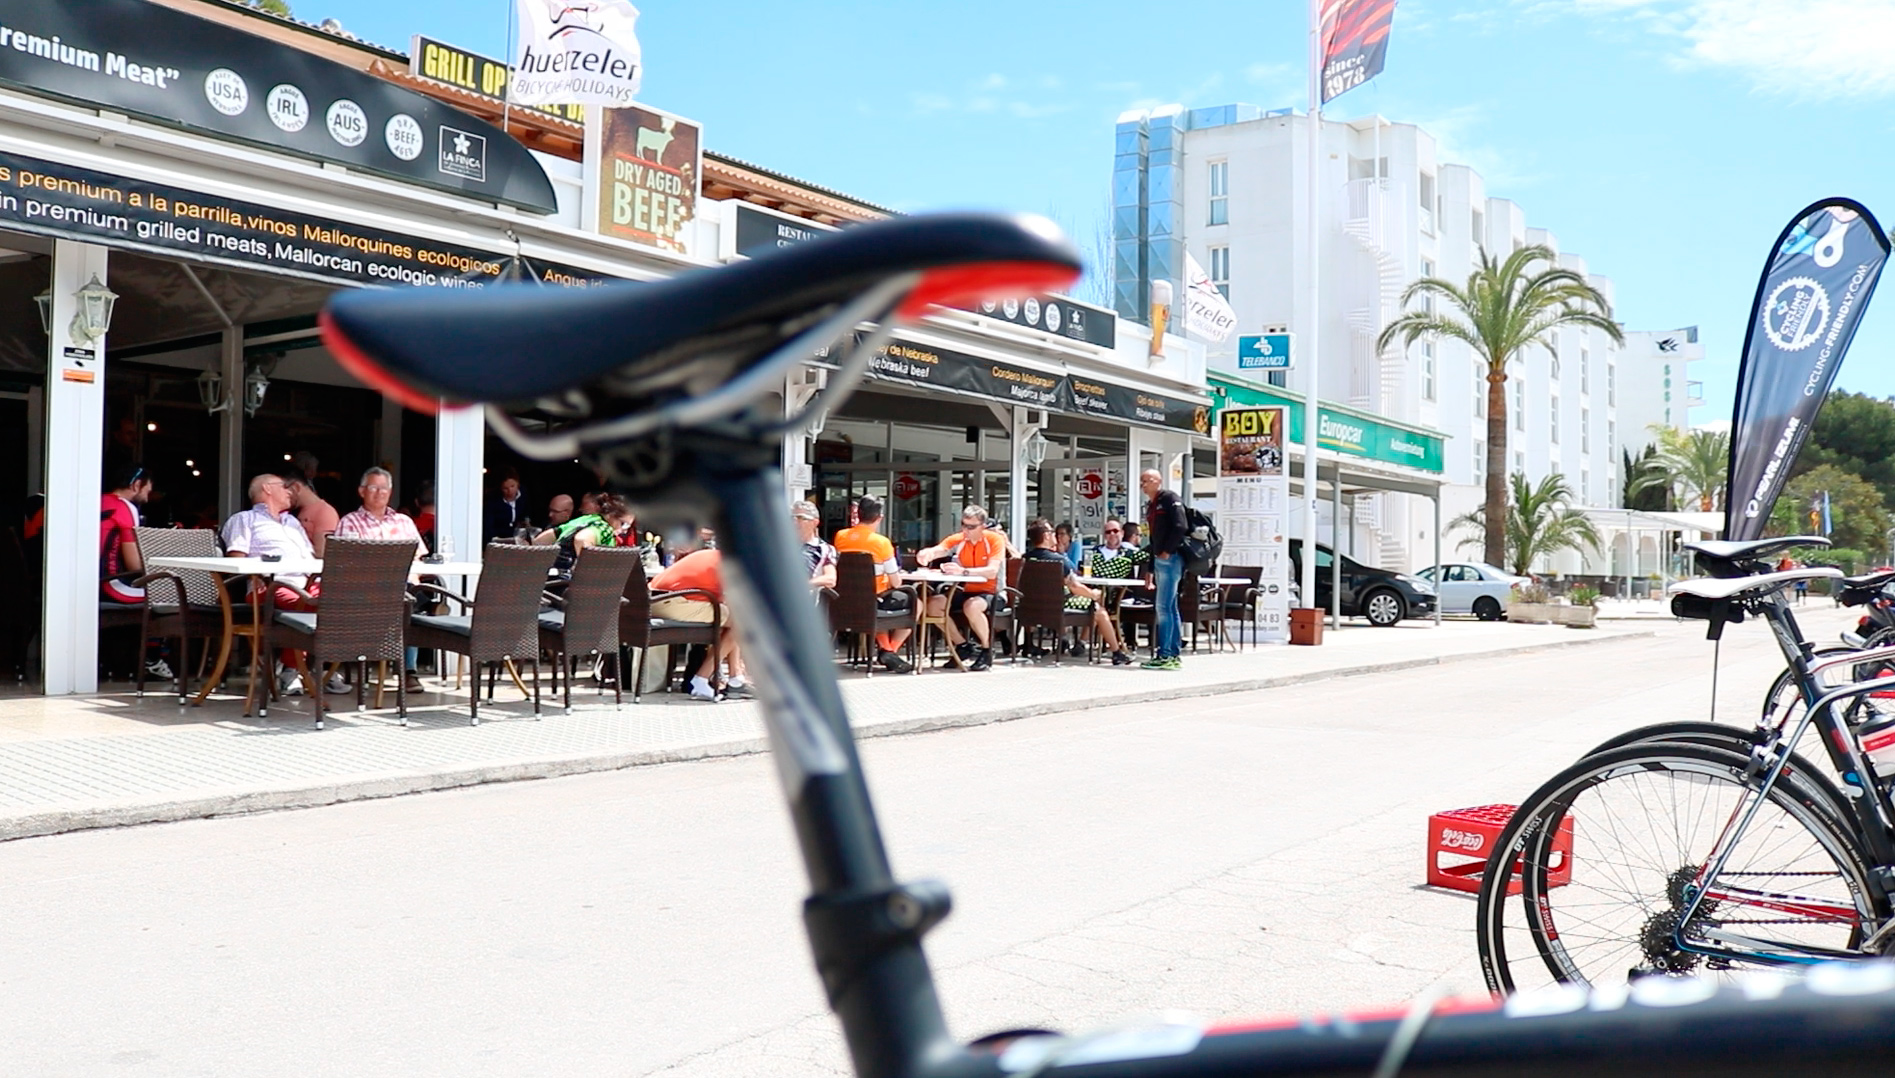 Restaurante Boy Bike Friendly video